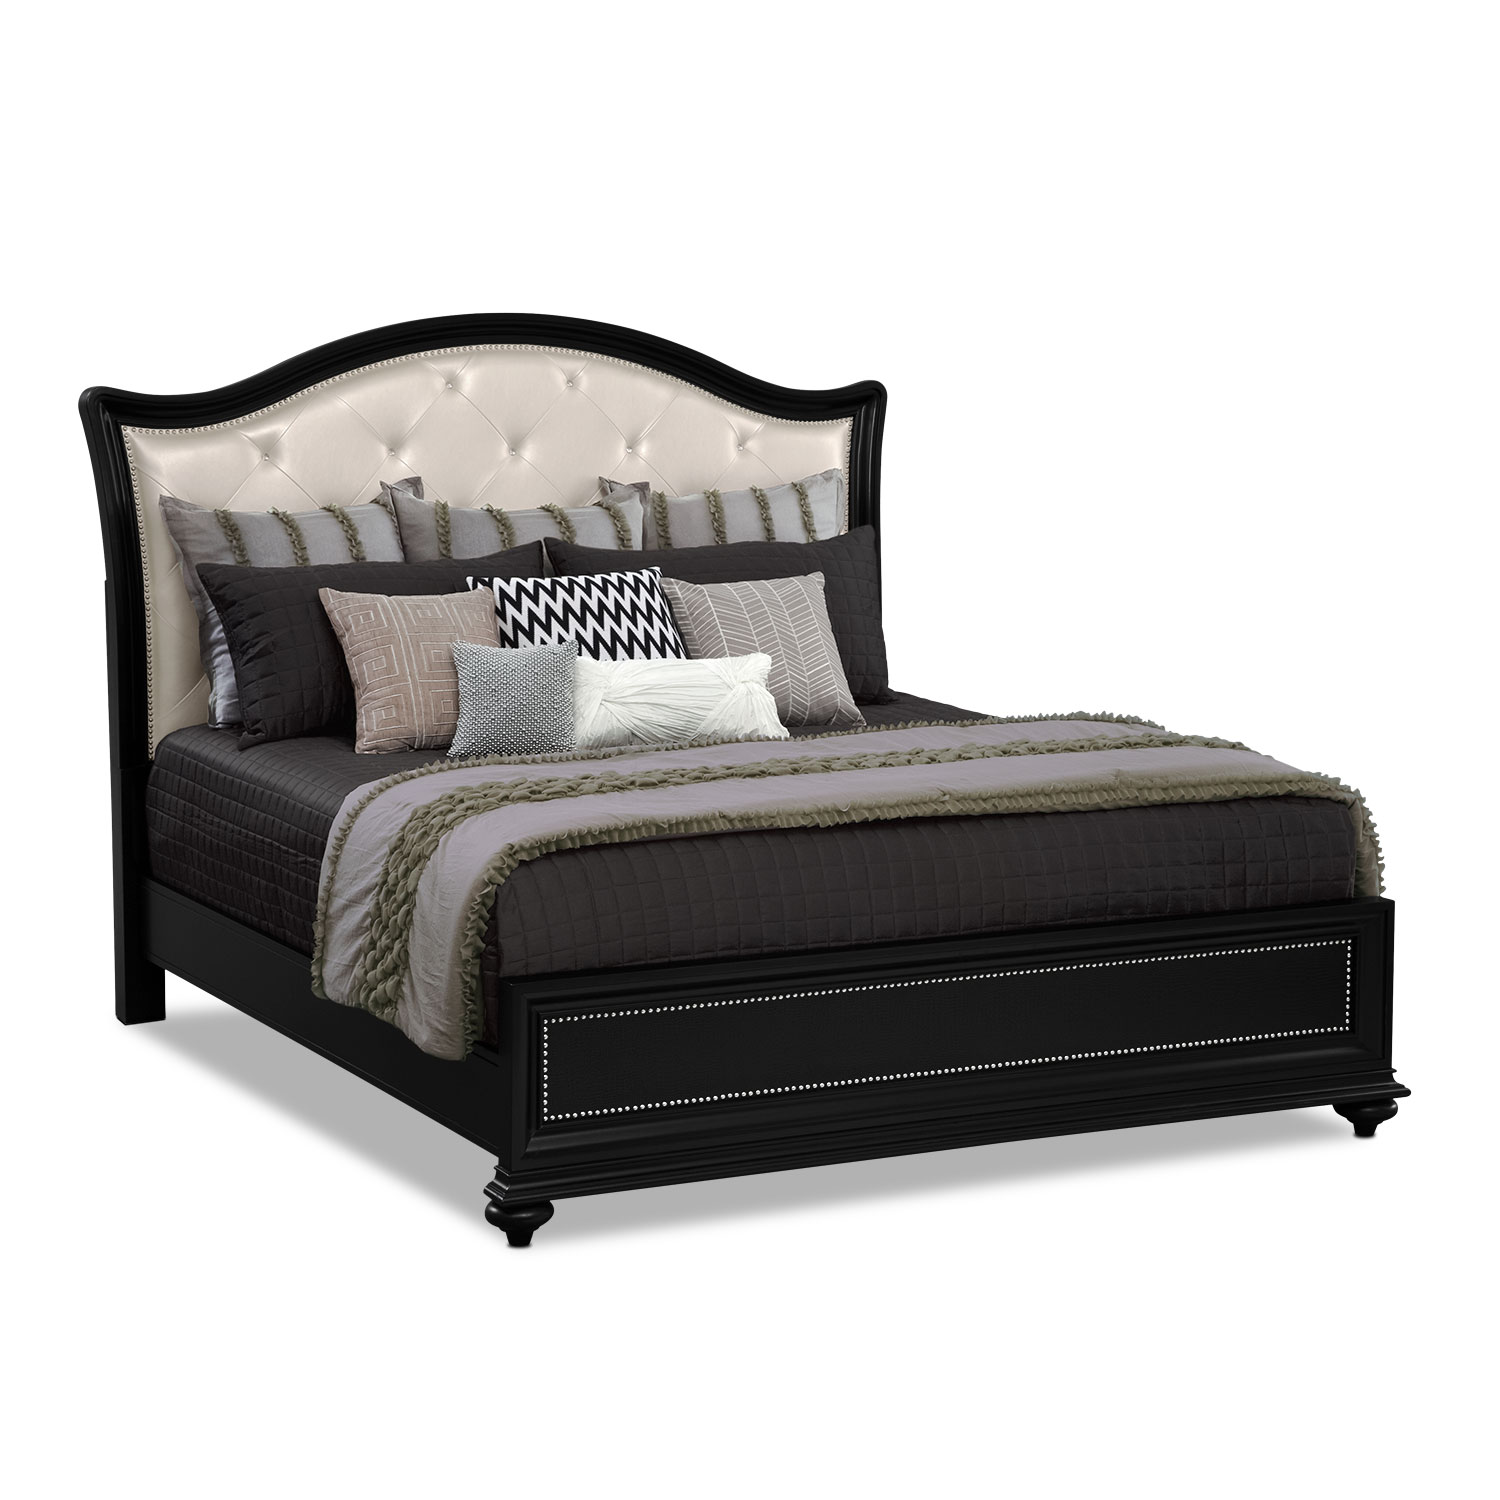 Ebony Beds 72